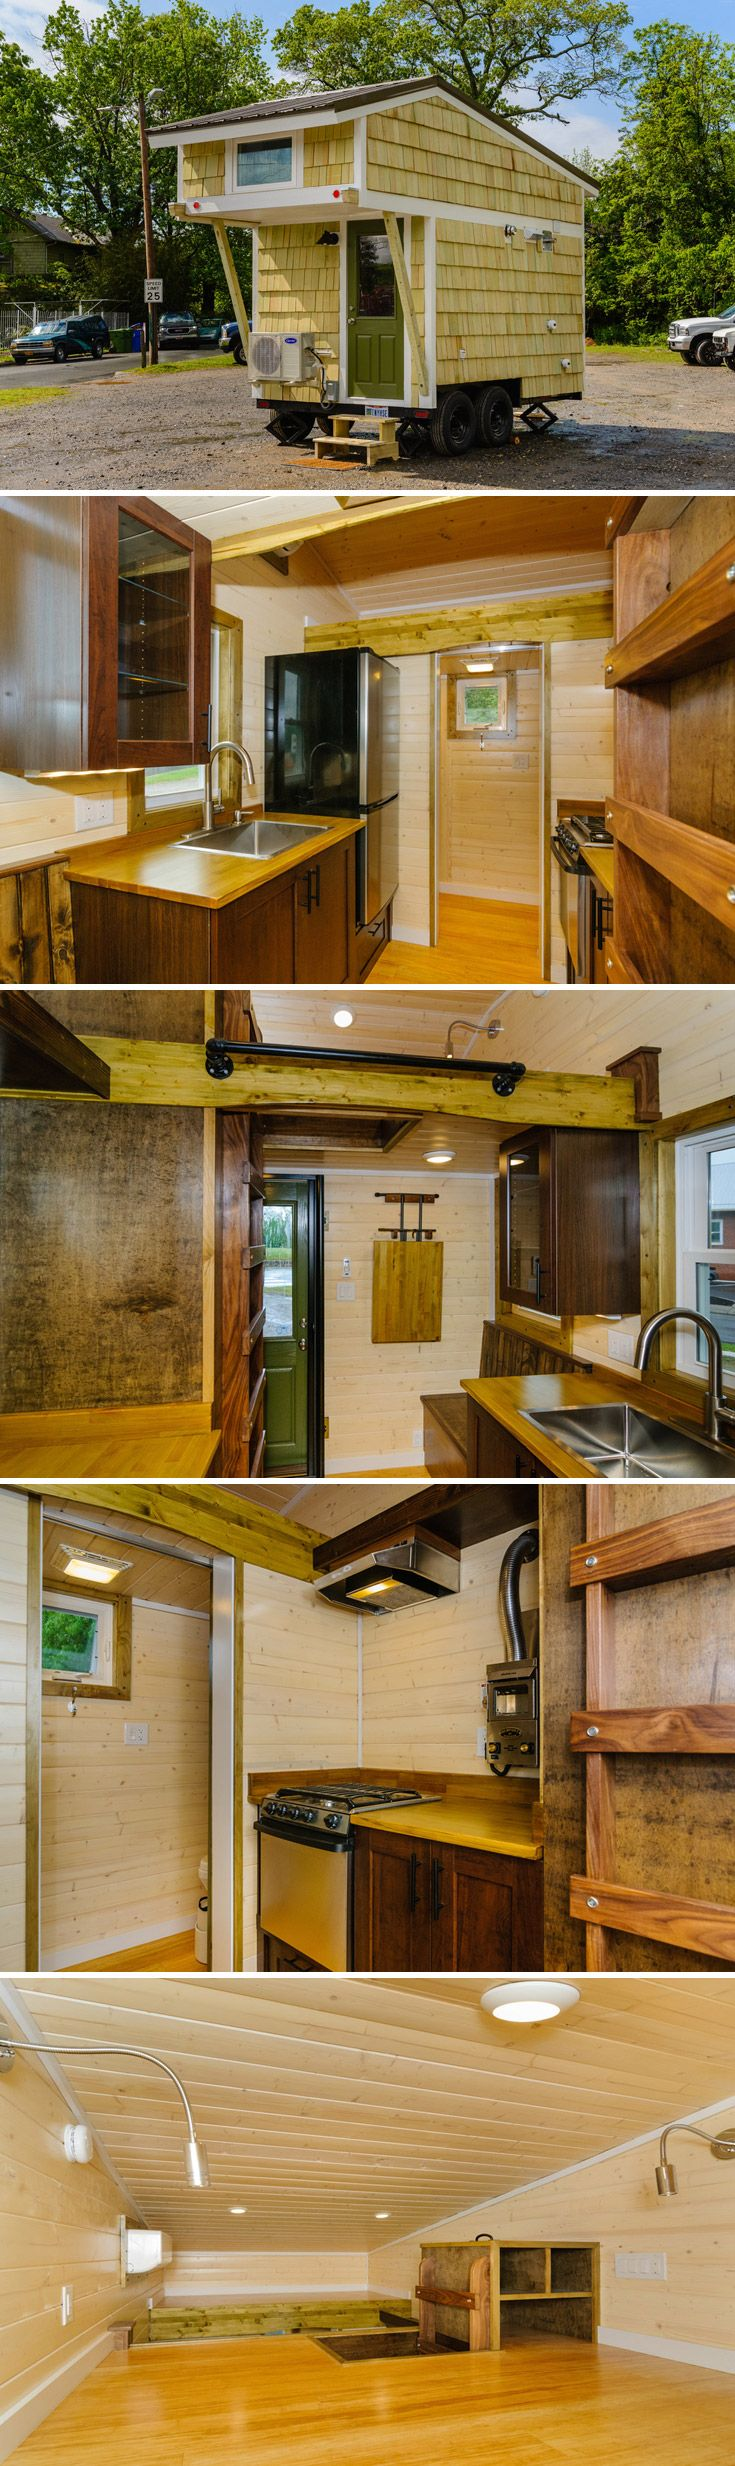 730 best tiny house images on pinterest small houses tiny